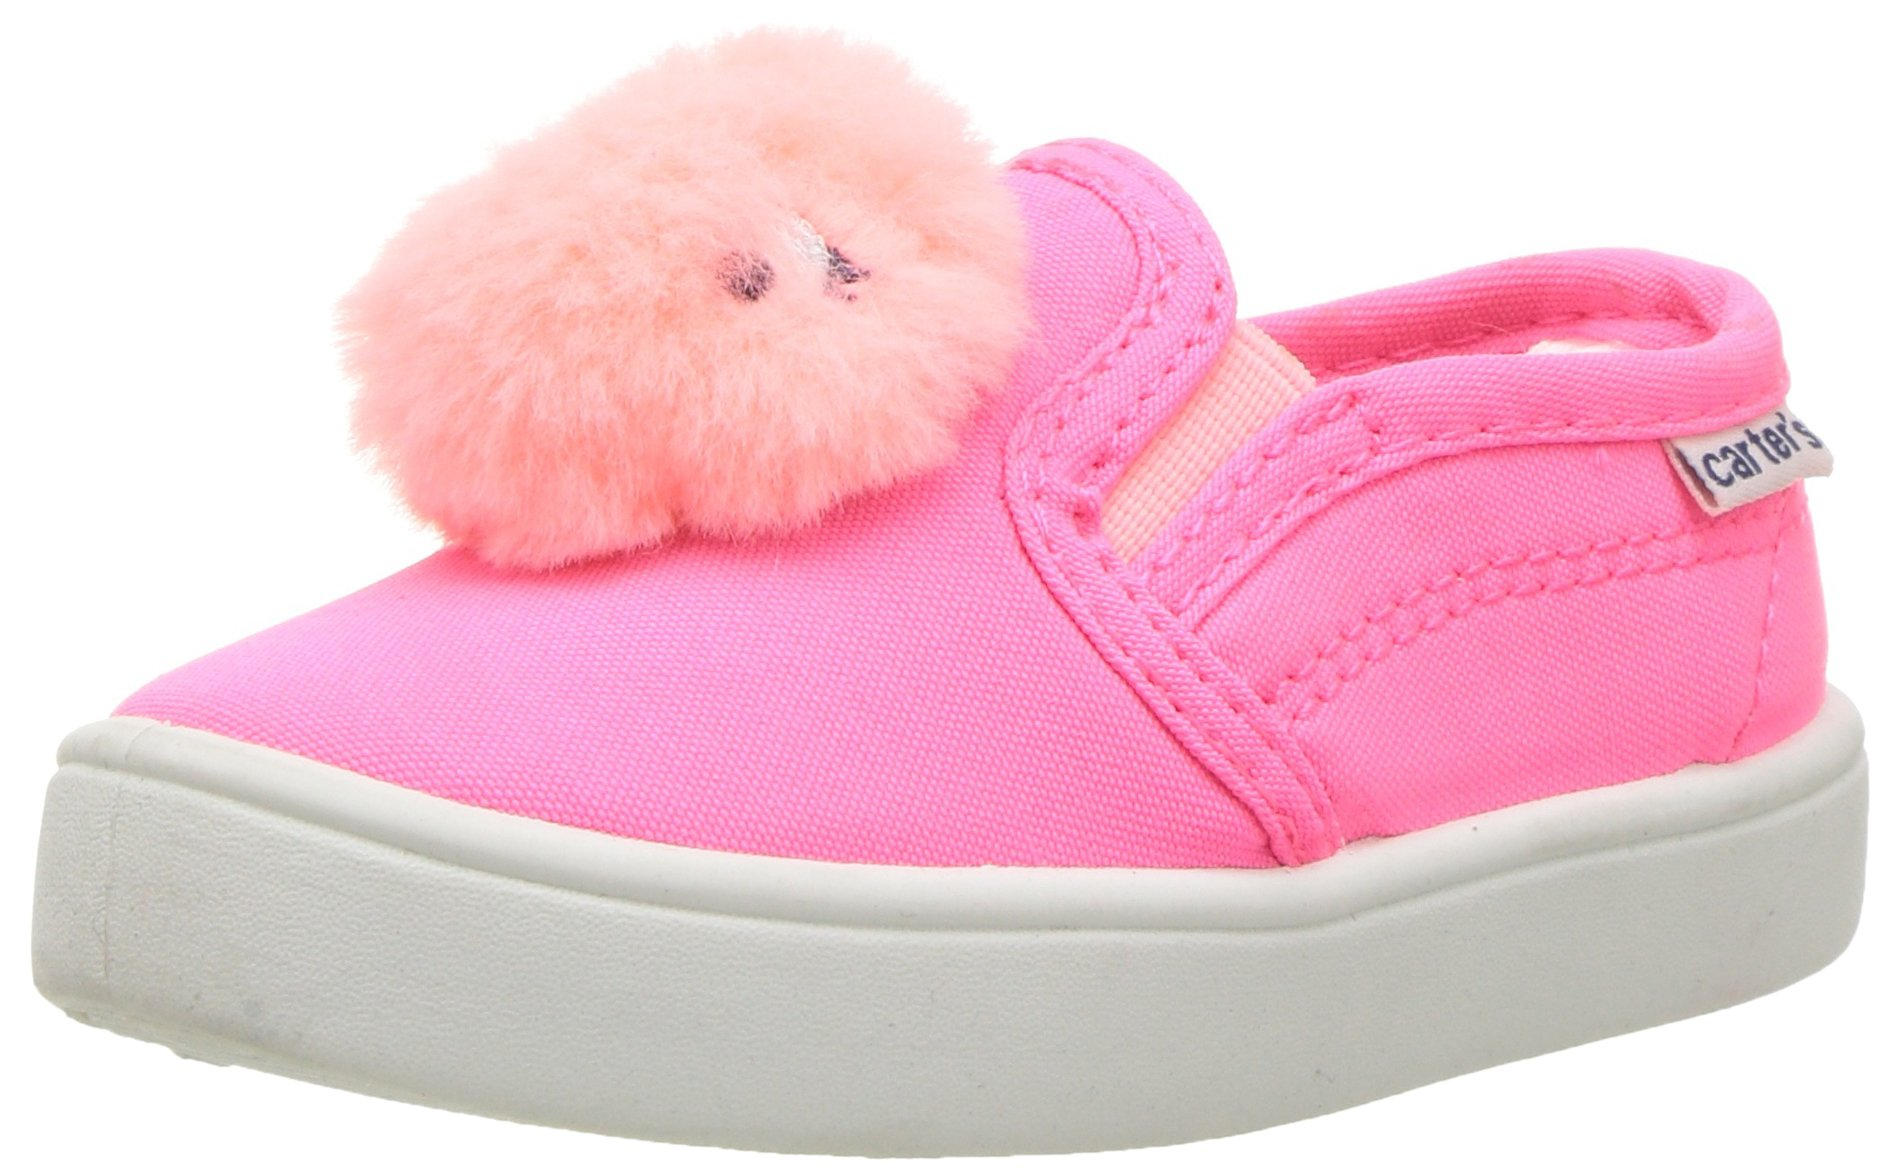 Carter's Girls' Tween Casual Slip-on Sneaker, Pink, 11 M US Little Kid